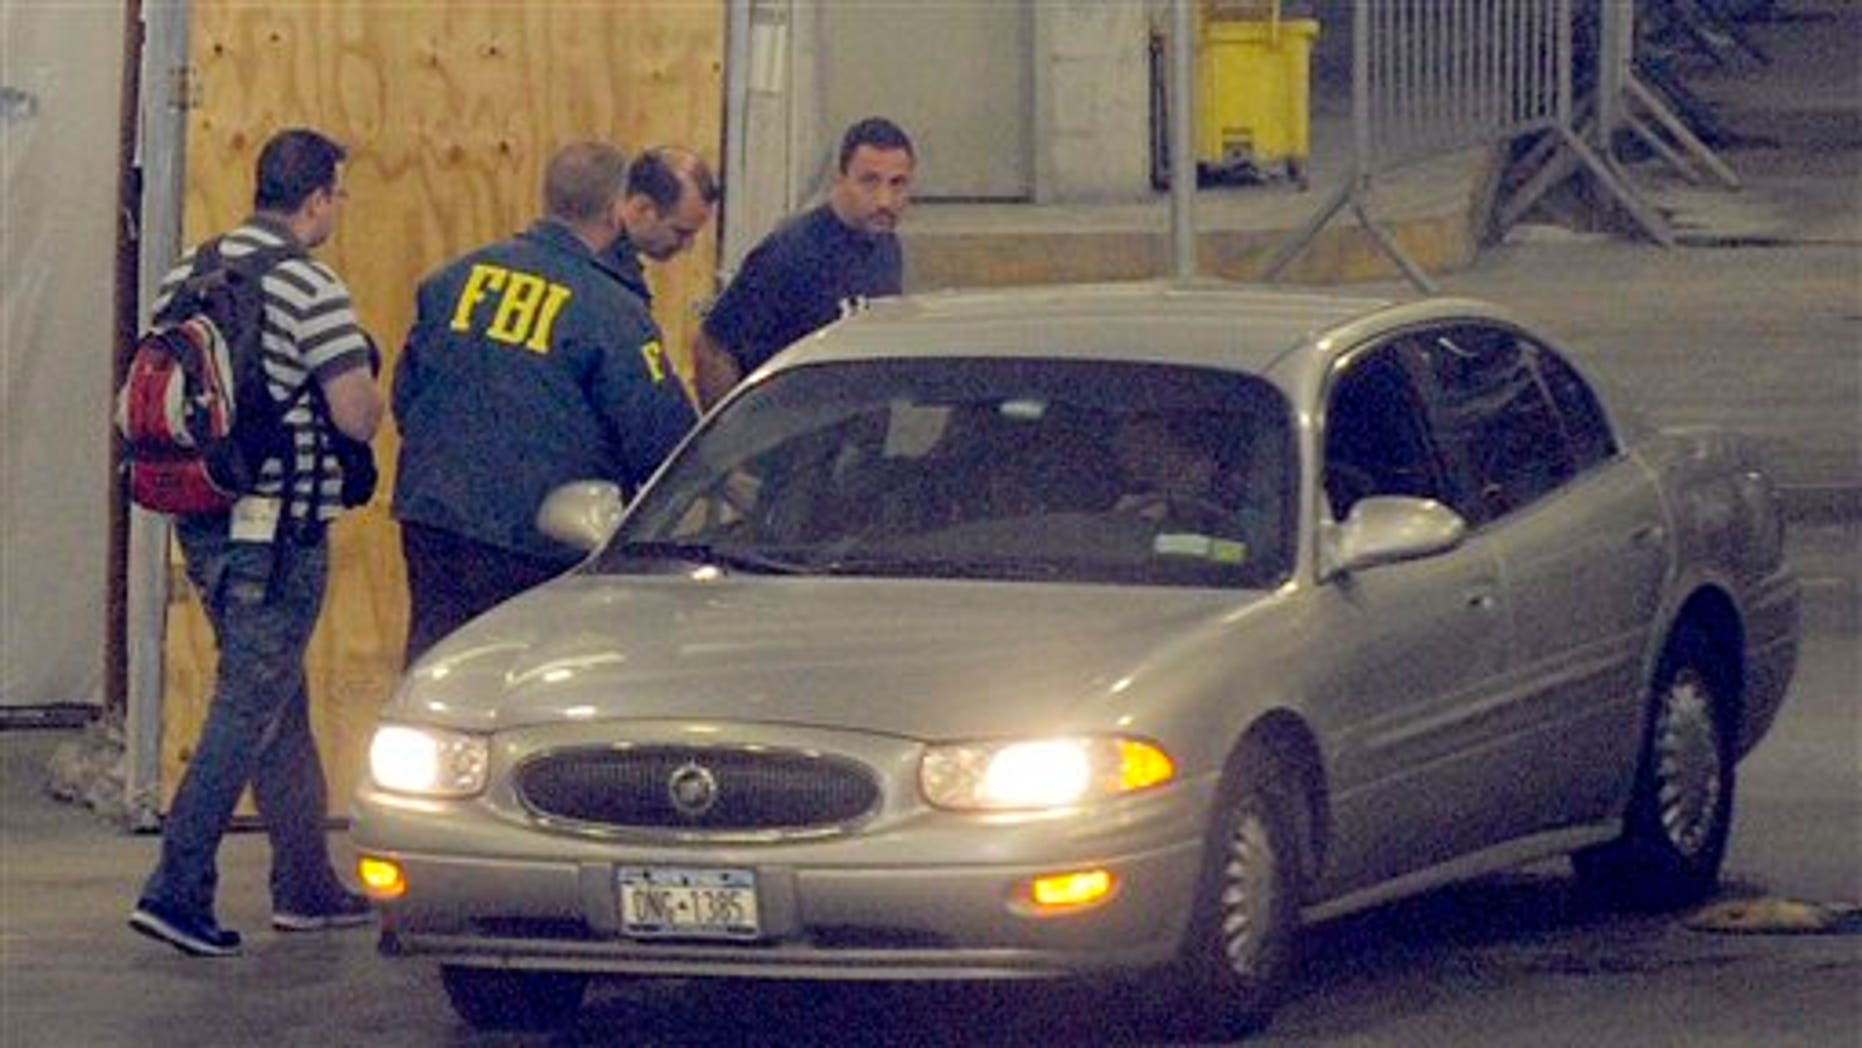 June 2: Richard Palase, standing right, a New York City Police Department detective, was one of 15 people, including two firefighters, who were arrested in connection with a New York City gambling ring, according to federal authorities, in New York. Palase is seen being transferred by FBI agents in the garage of the Jacob K. Javits Federal Building. (AP)